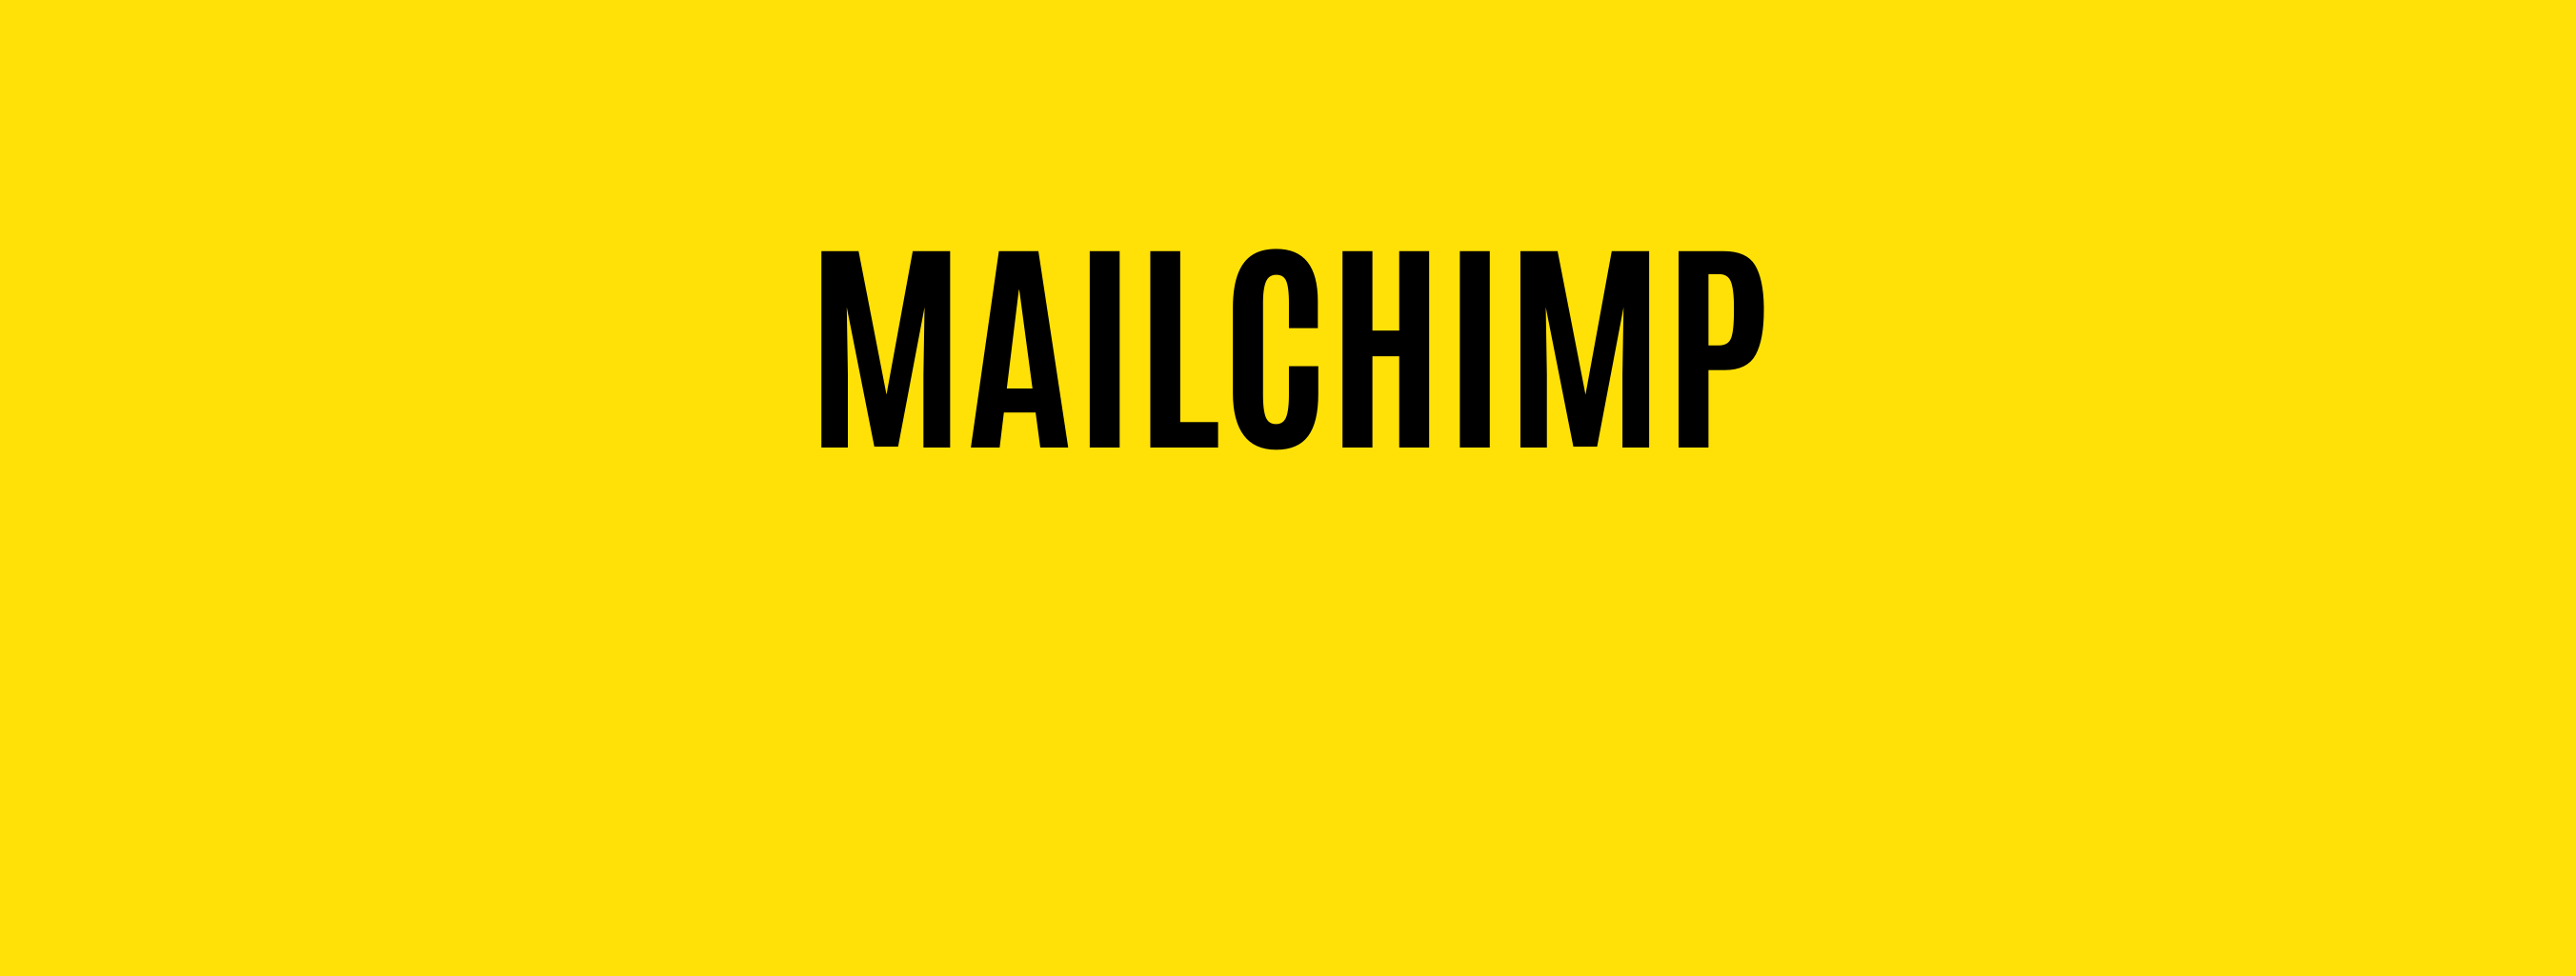 Mailchimp Email Marketing, Social & CRM